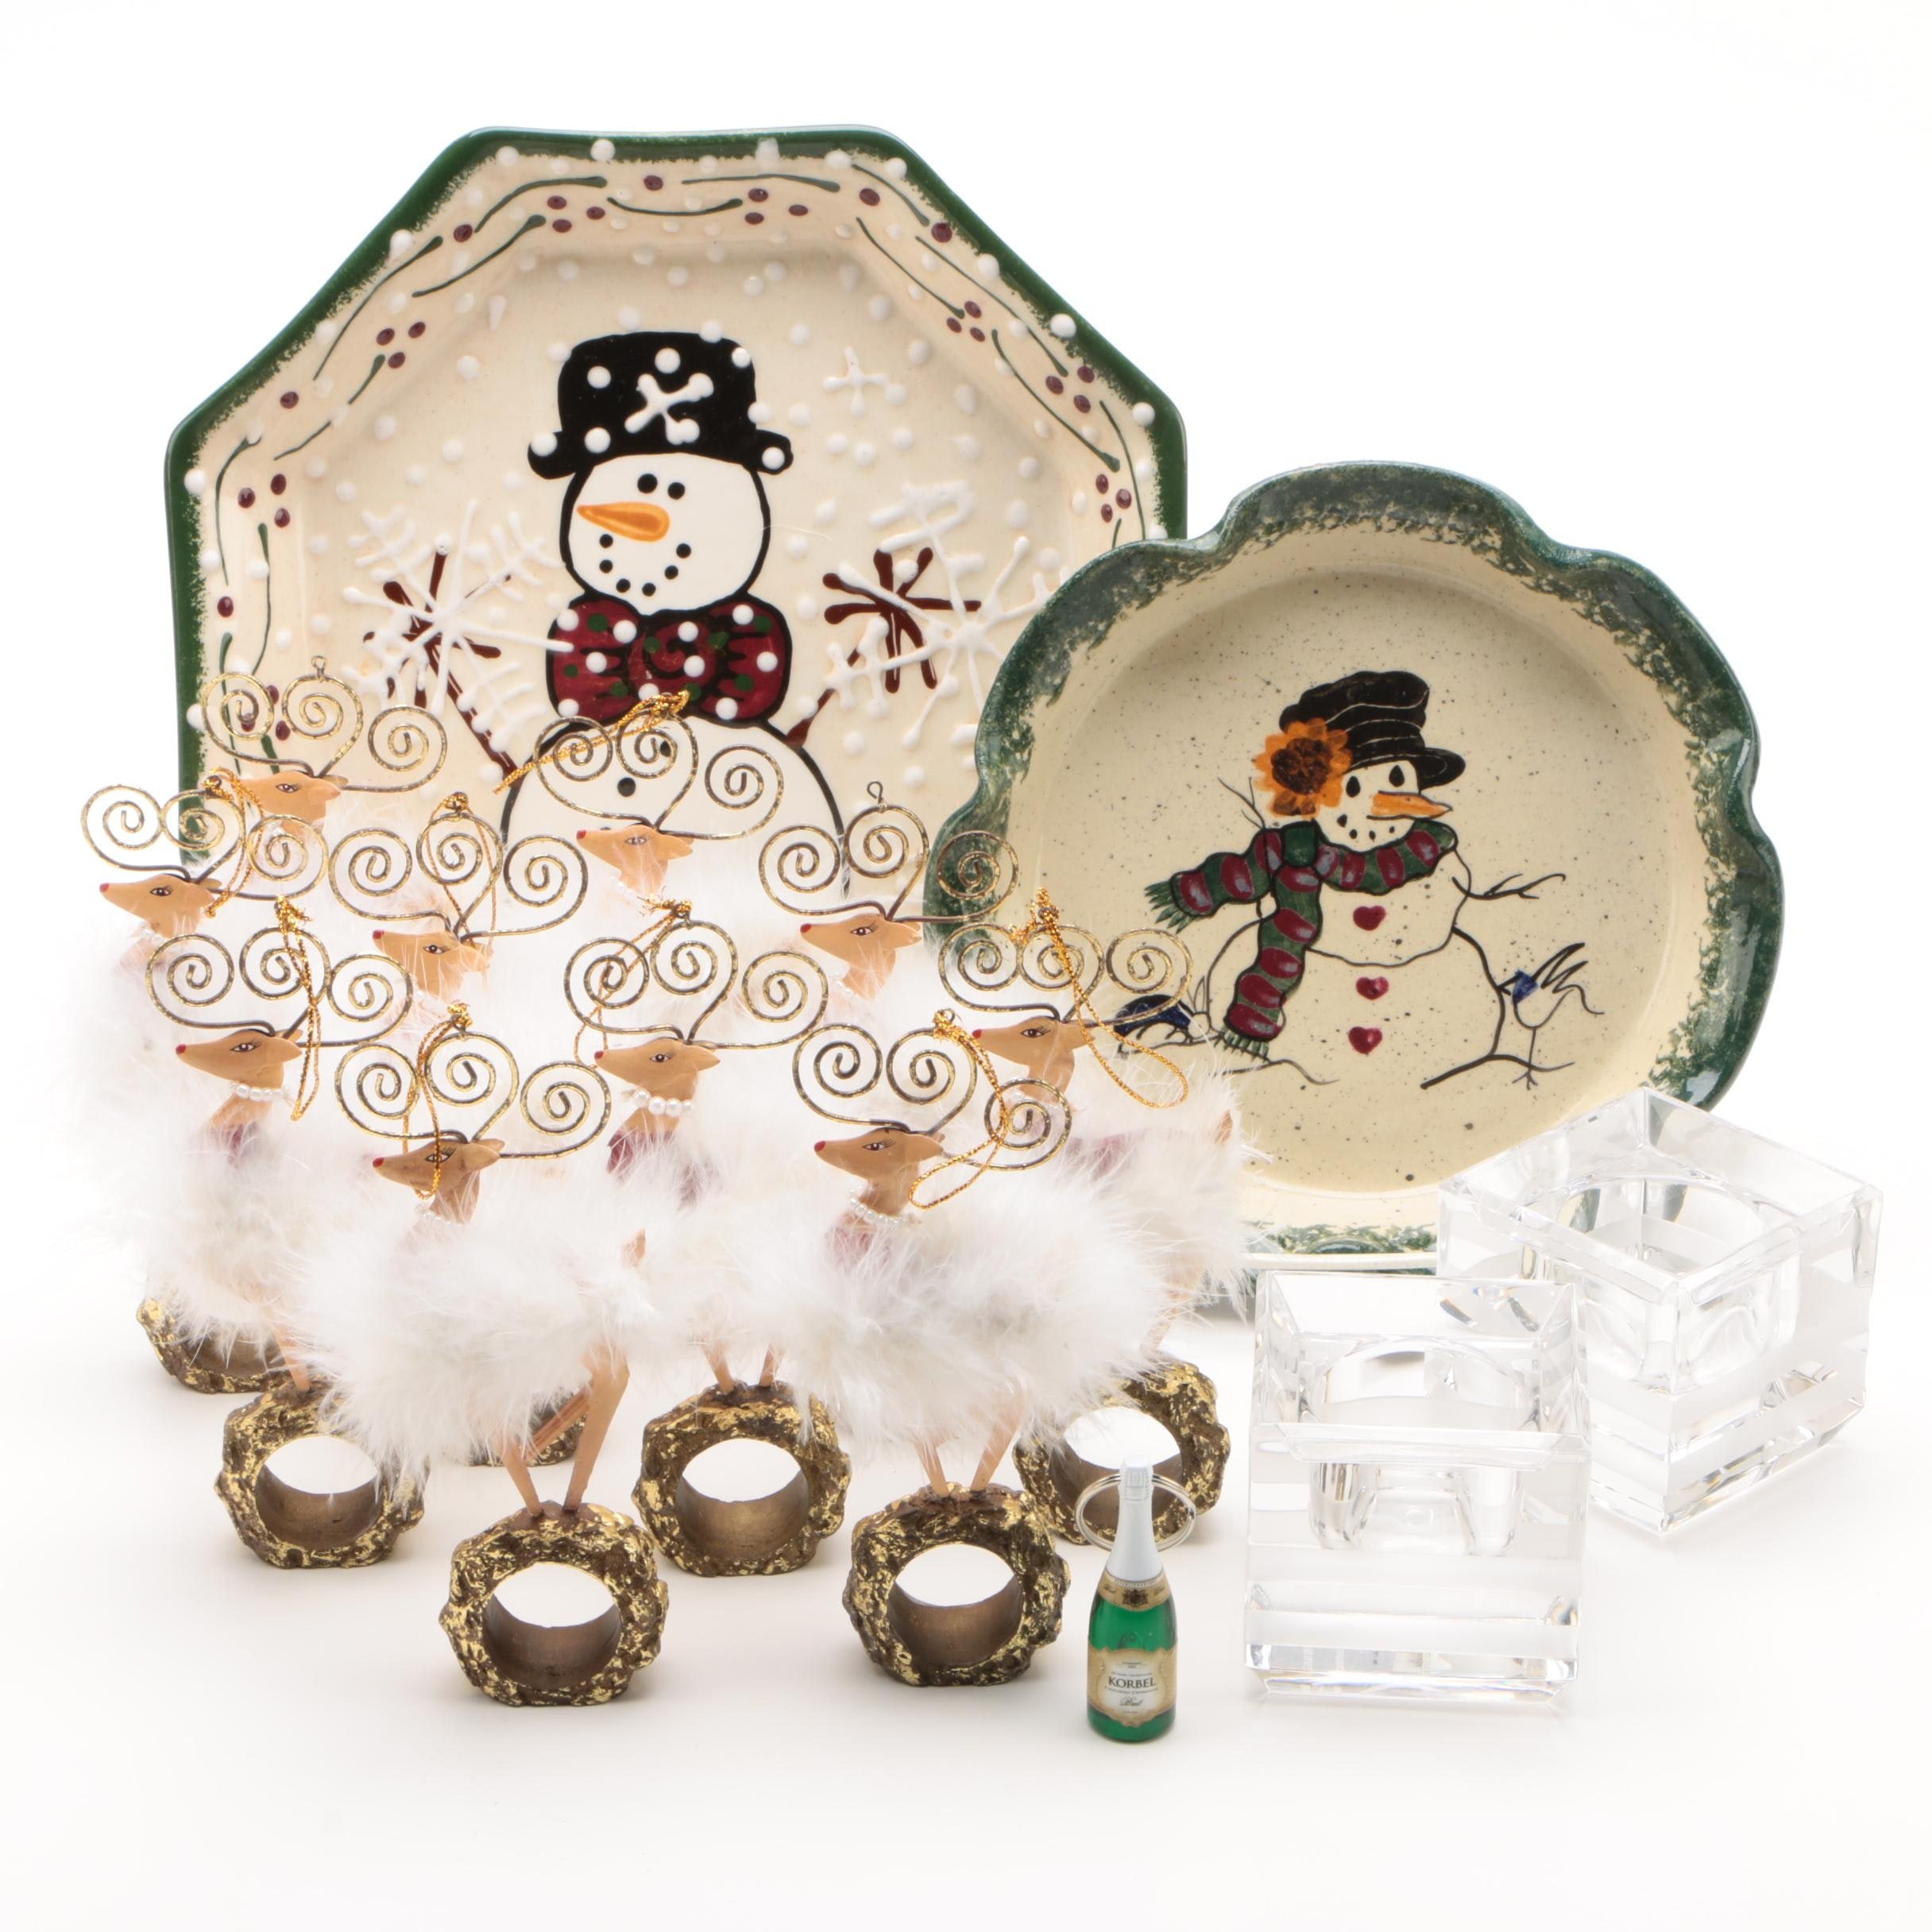 Wedgwood Vera Wang Crystal Votives with Holiday Plates and Other Decor